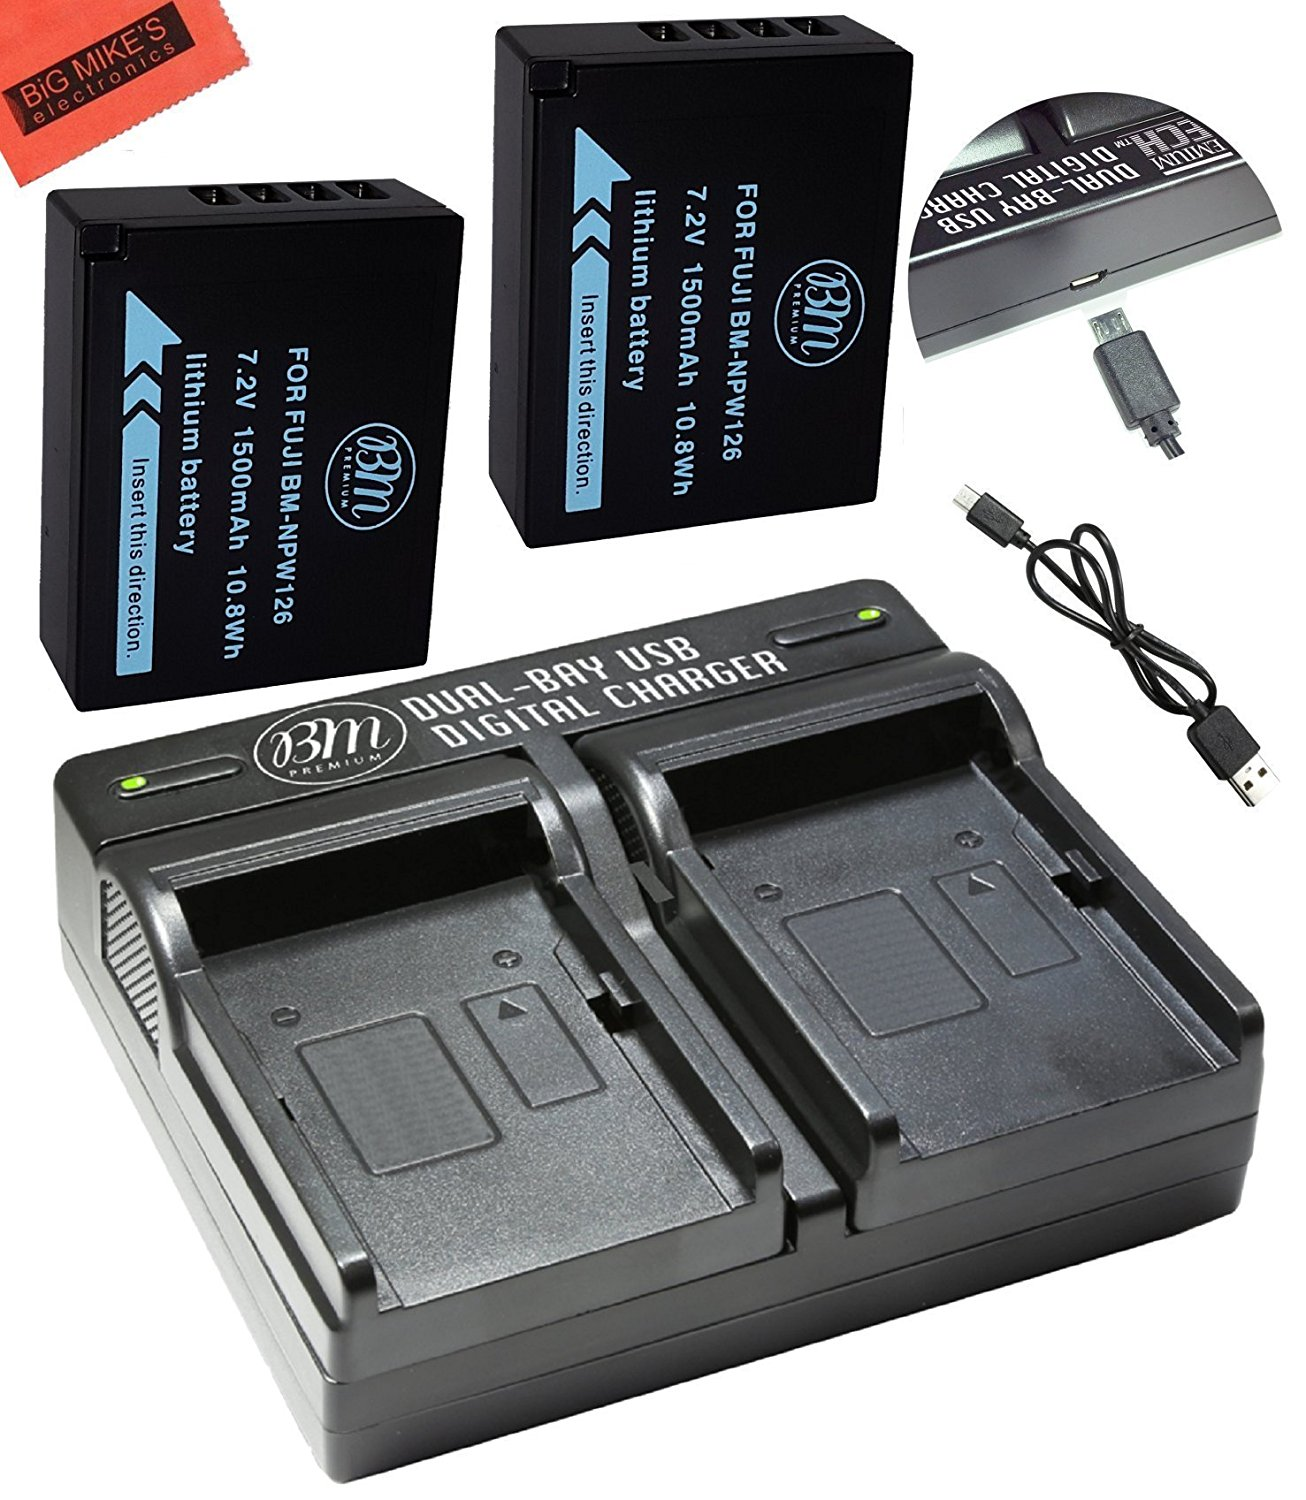 Bm Premium 2 Np W126 W126s Batteries And Dual Battery Charger Fuji For Fujifilm Finepix X100f X T10 T20 Pro1 Pro2 Hs35exr Hs50exr A1 A2